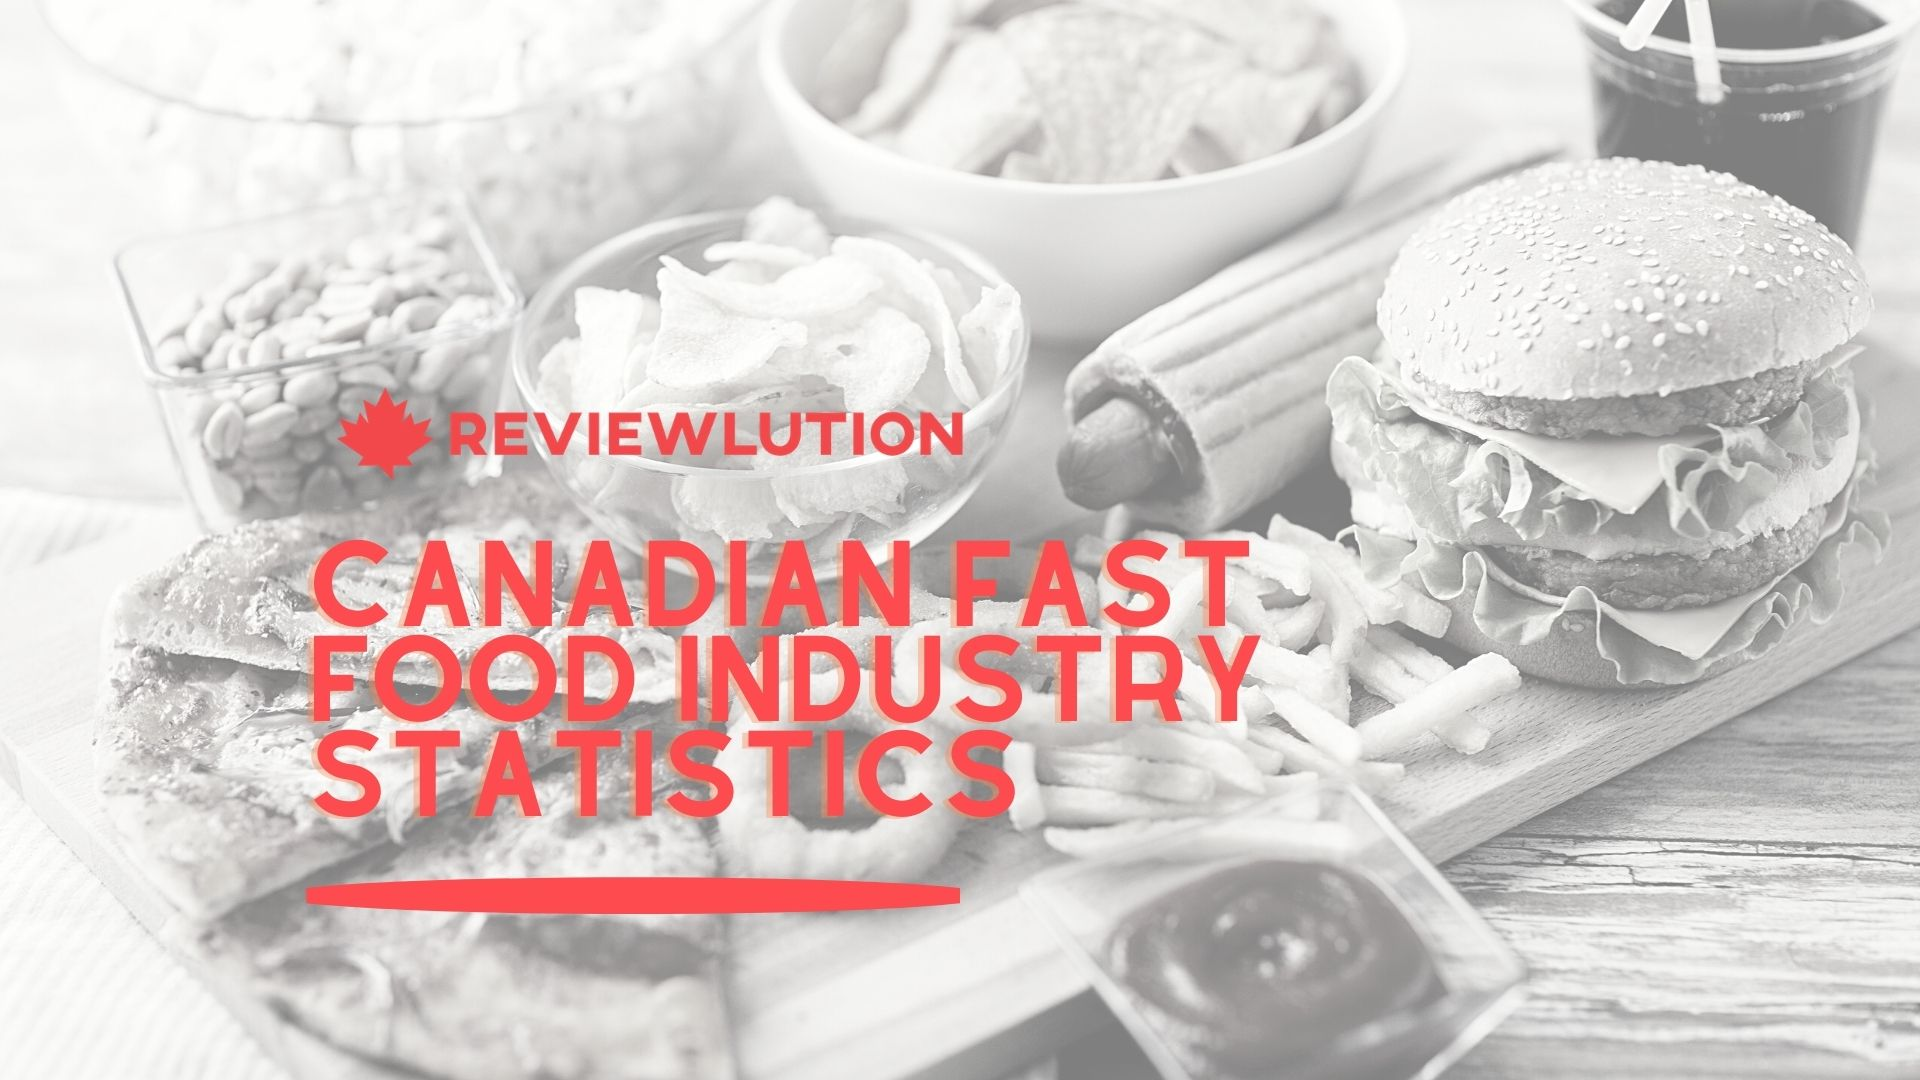 20 Tasty Canadian Fast Food Industry Statistics for 2021